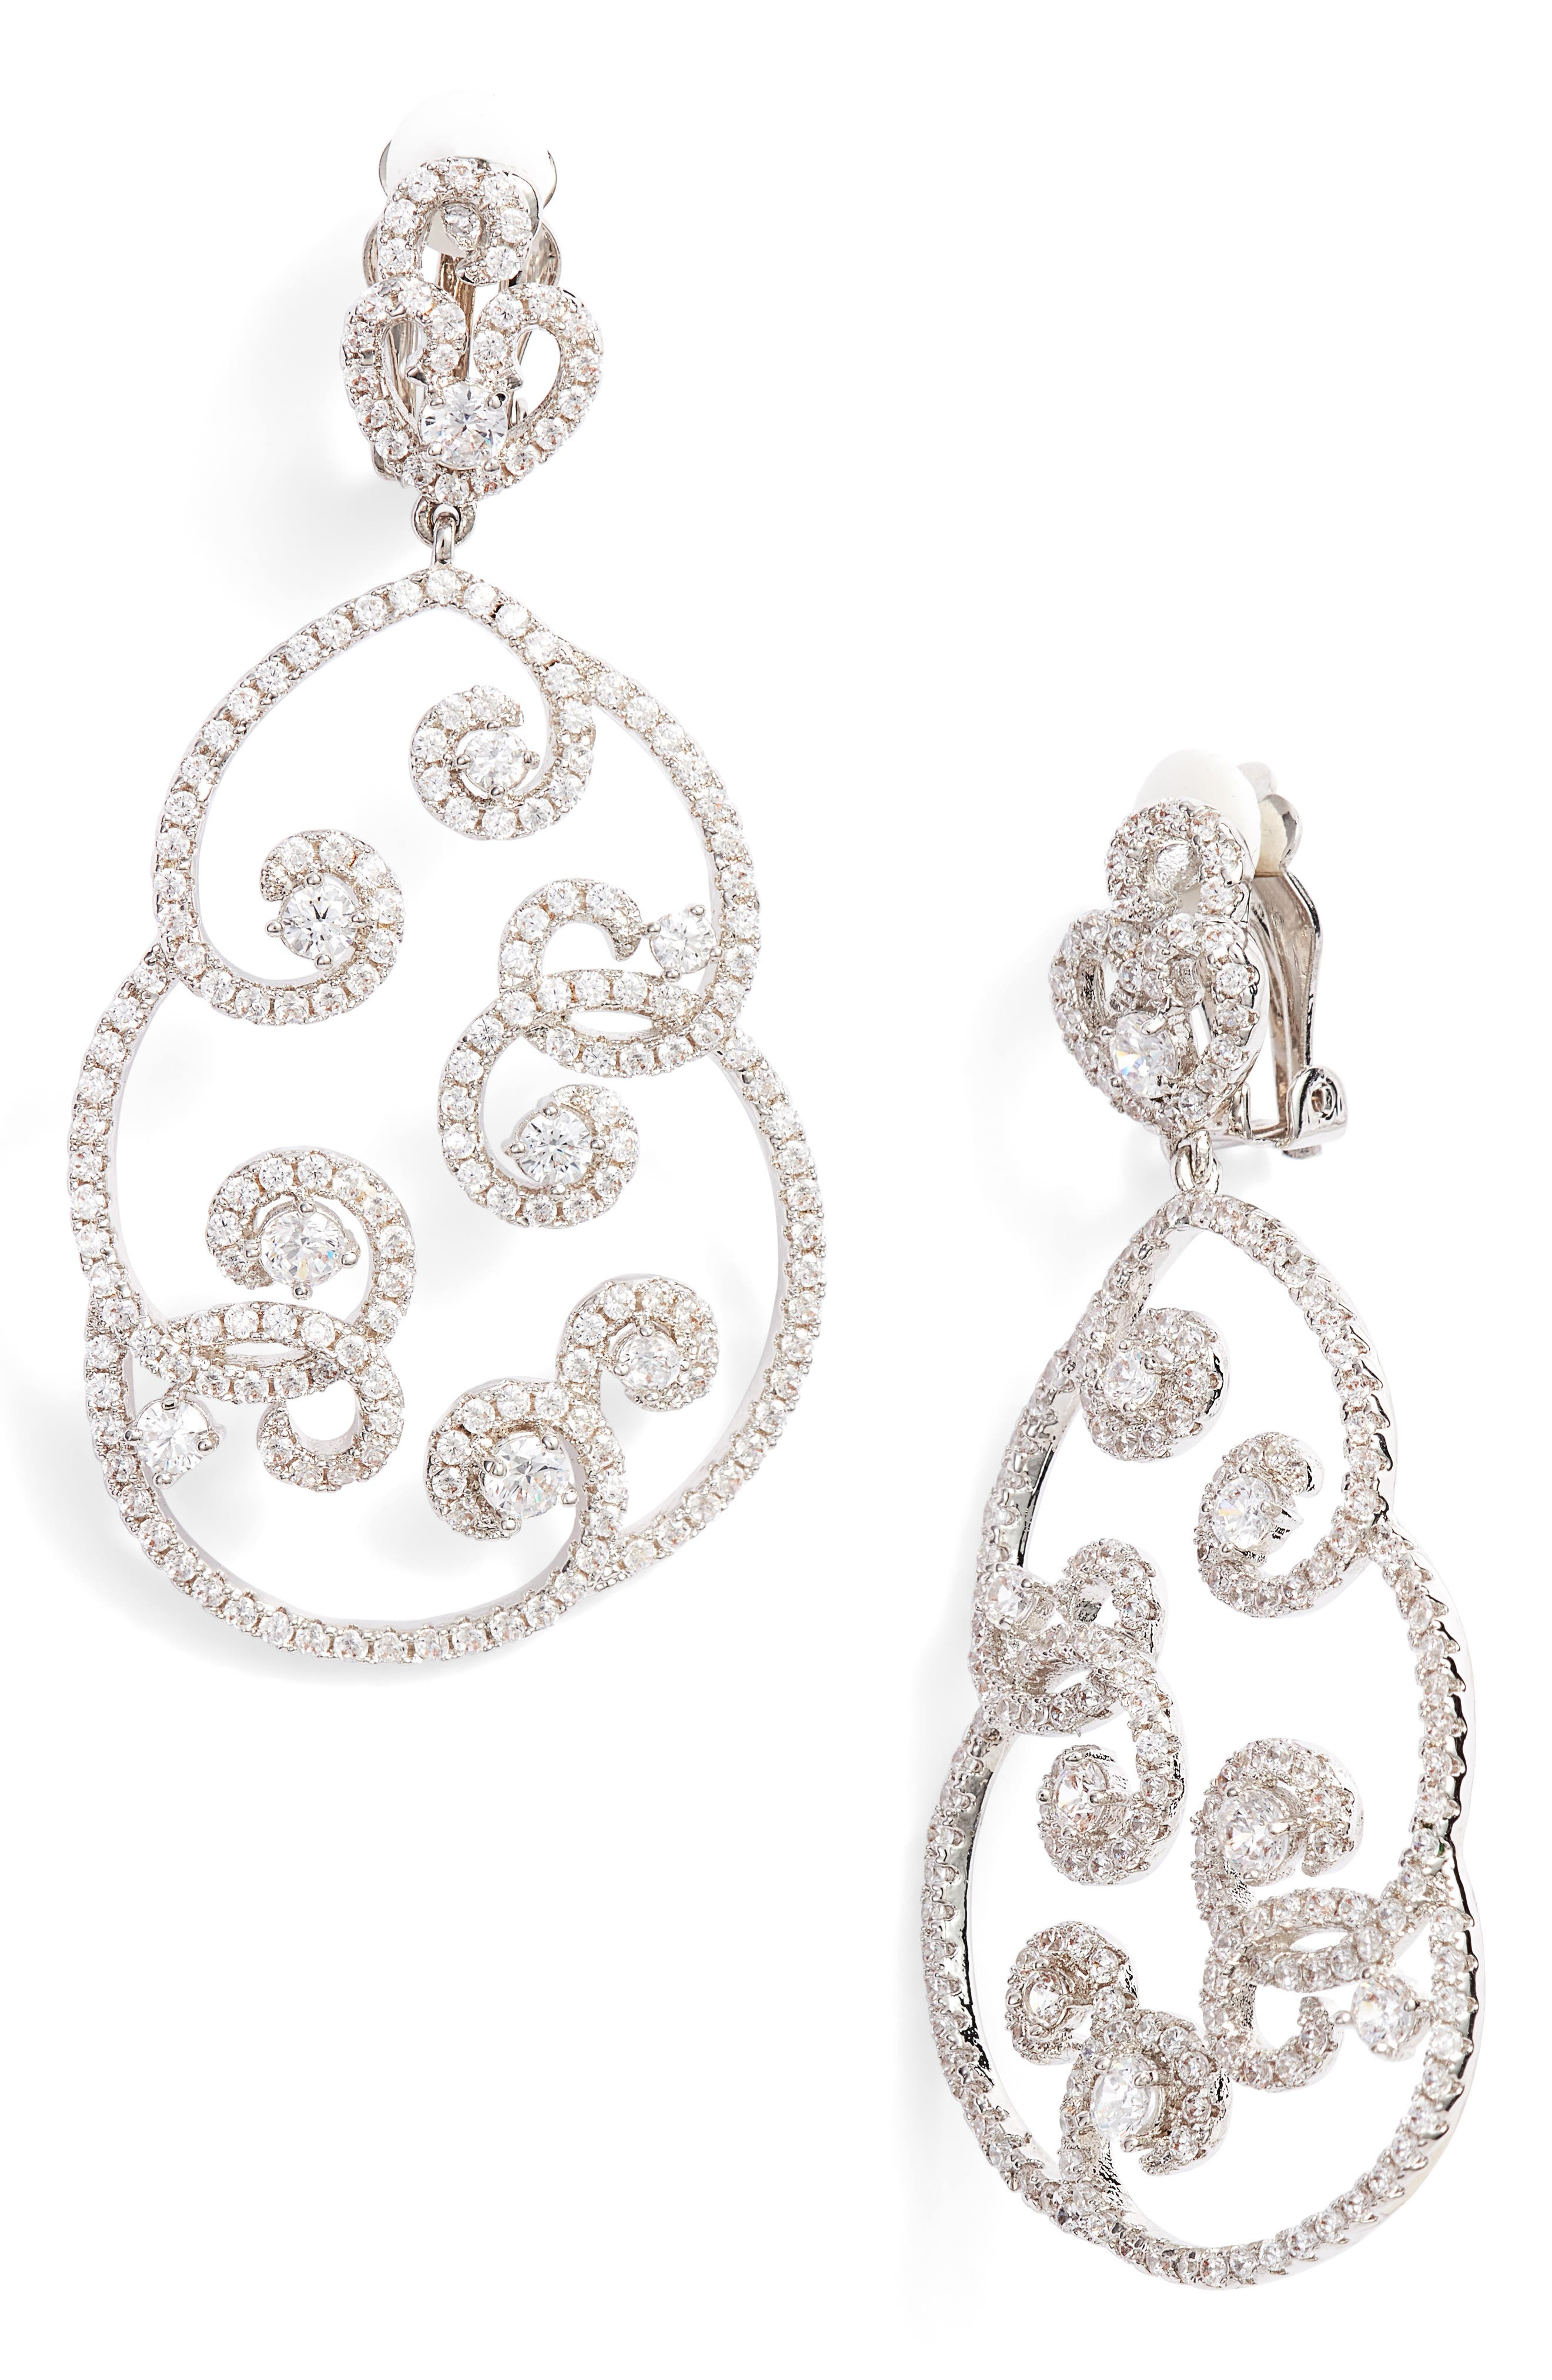 Swirl Pavé Clip-On Drop Earrings,                         Main,                         color, SILVER/ WHITE CZ